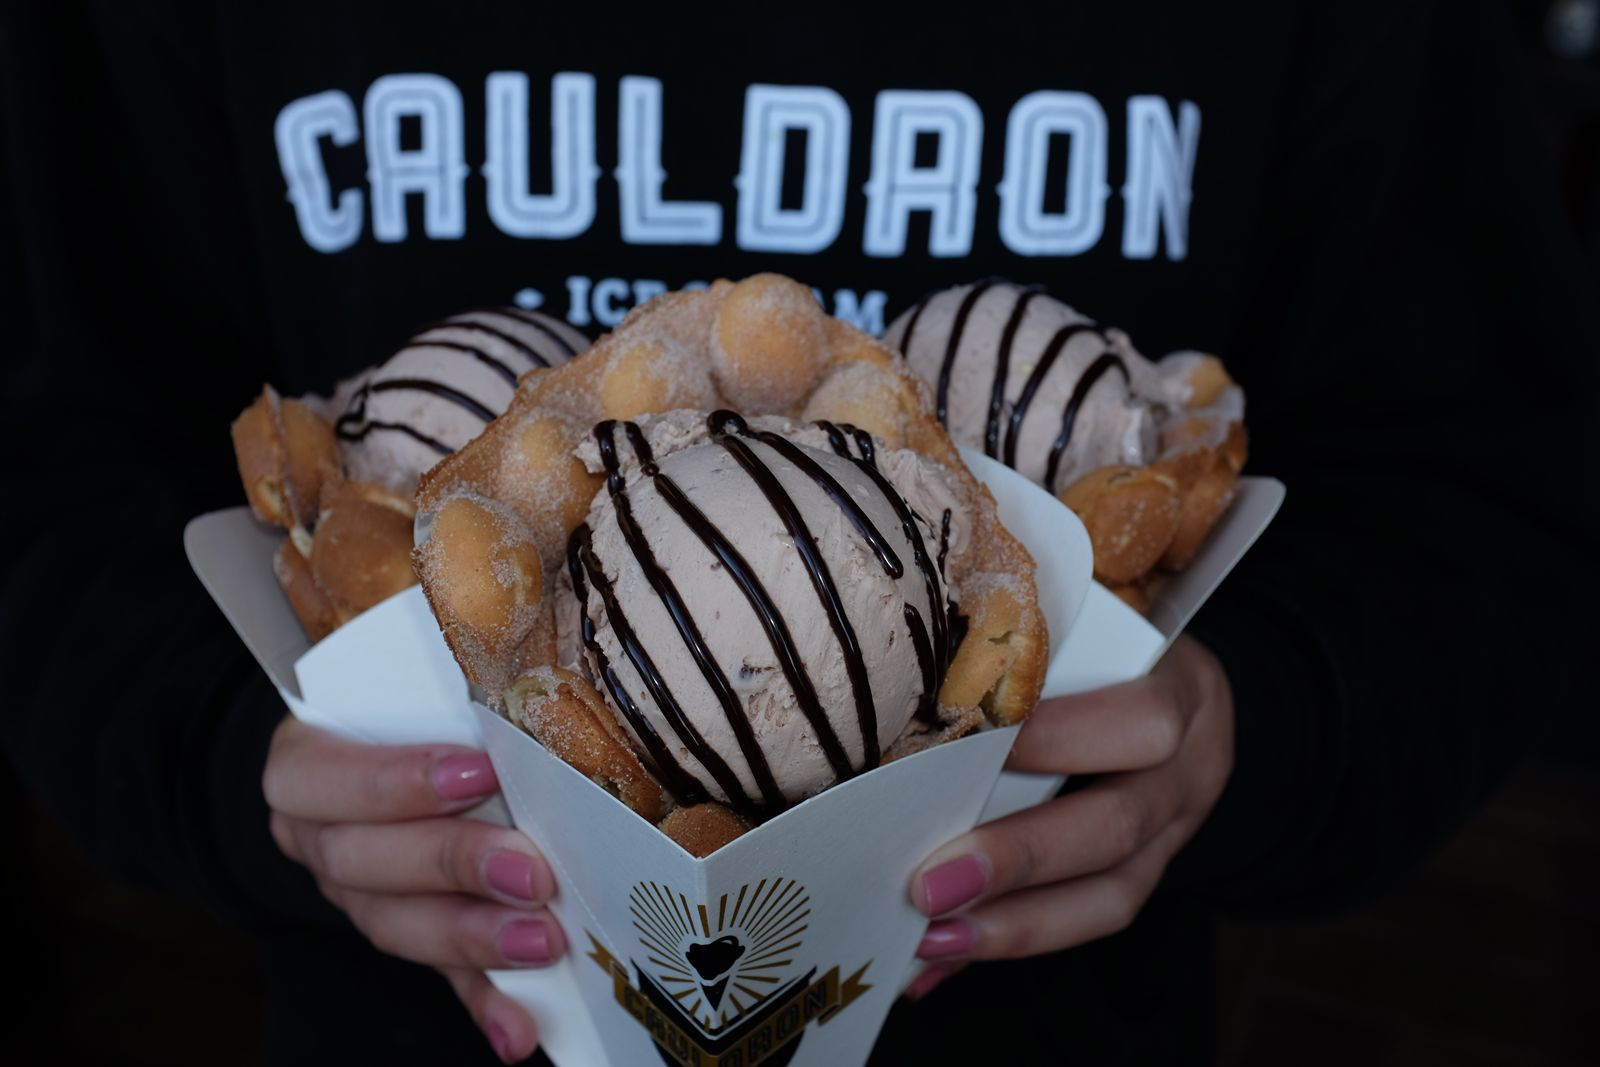 Cauldron Ice Cream, the Instagram-famous scoop shop known for its viral OG Puffle Cone, has signed a lease for its upcoming Torrance, CA store, which will be located at 21605 S. Western Ave in the city's Old Town.